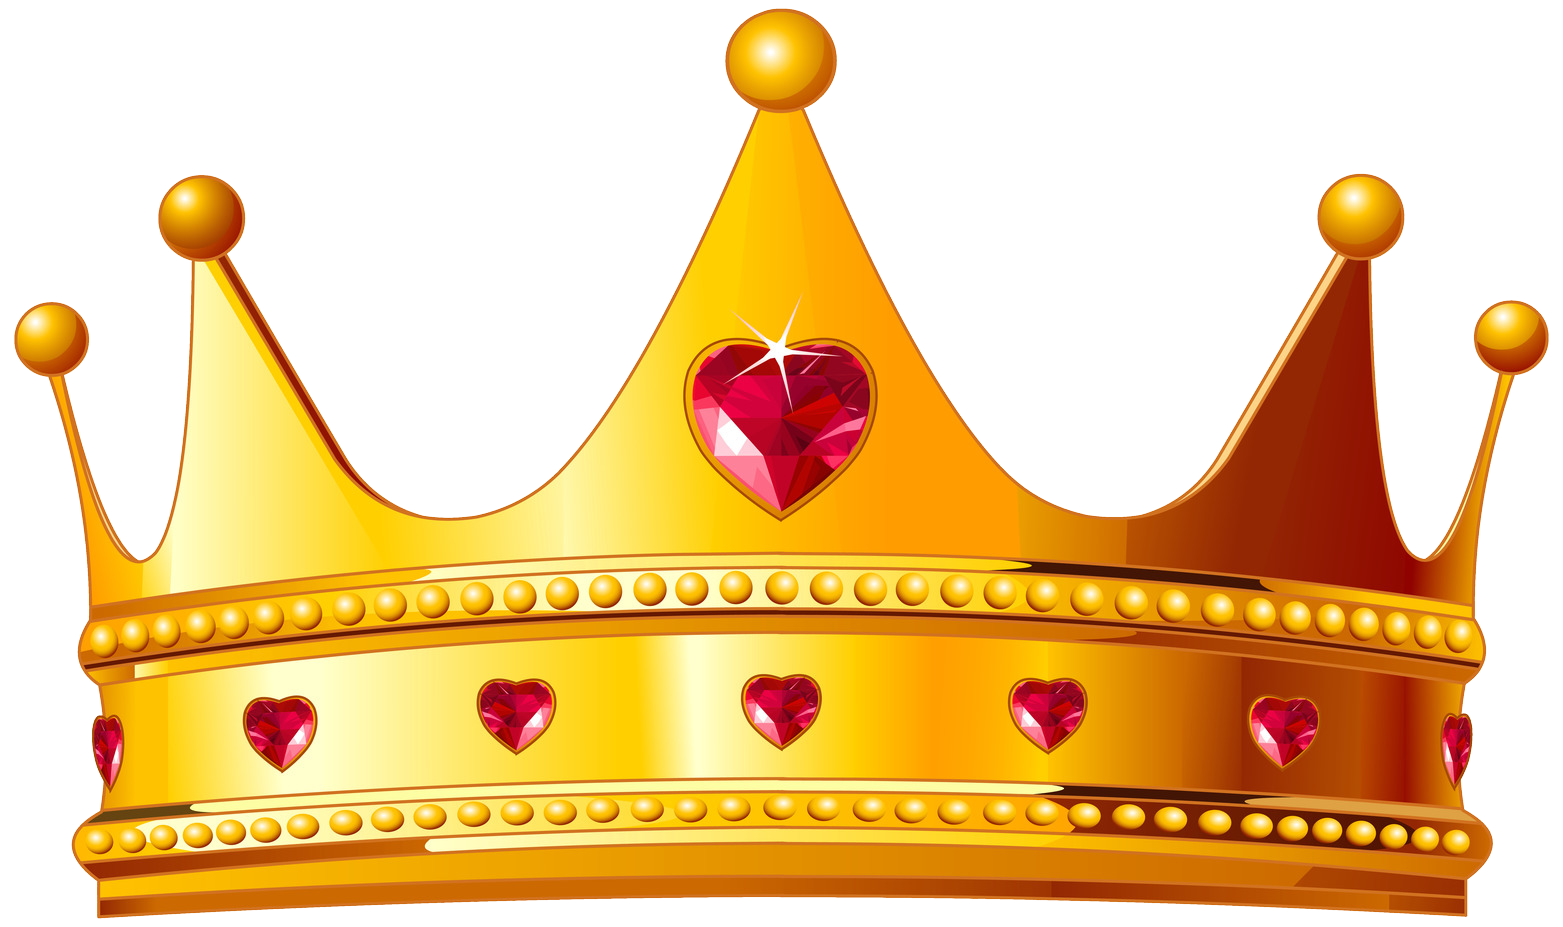 Full Hd Crown Png Transparent Background - Art PNG Transparent Background